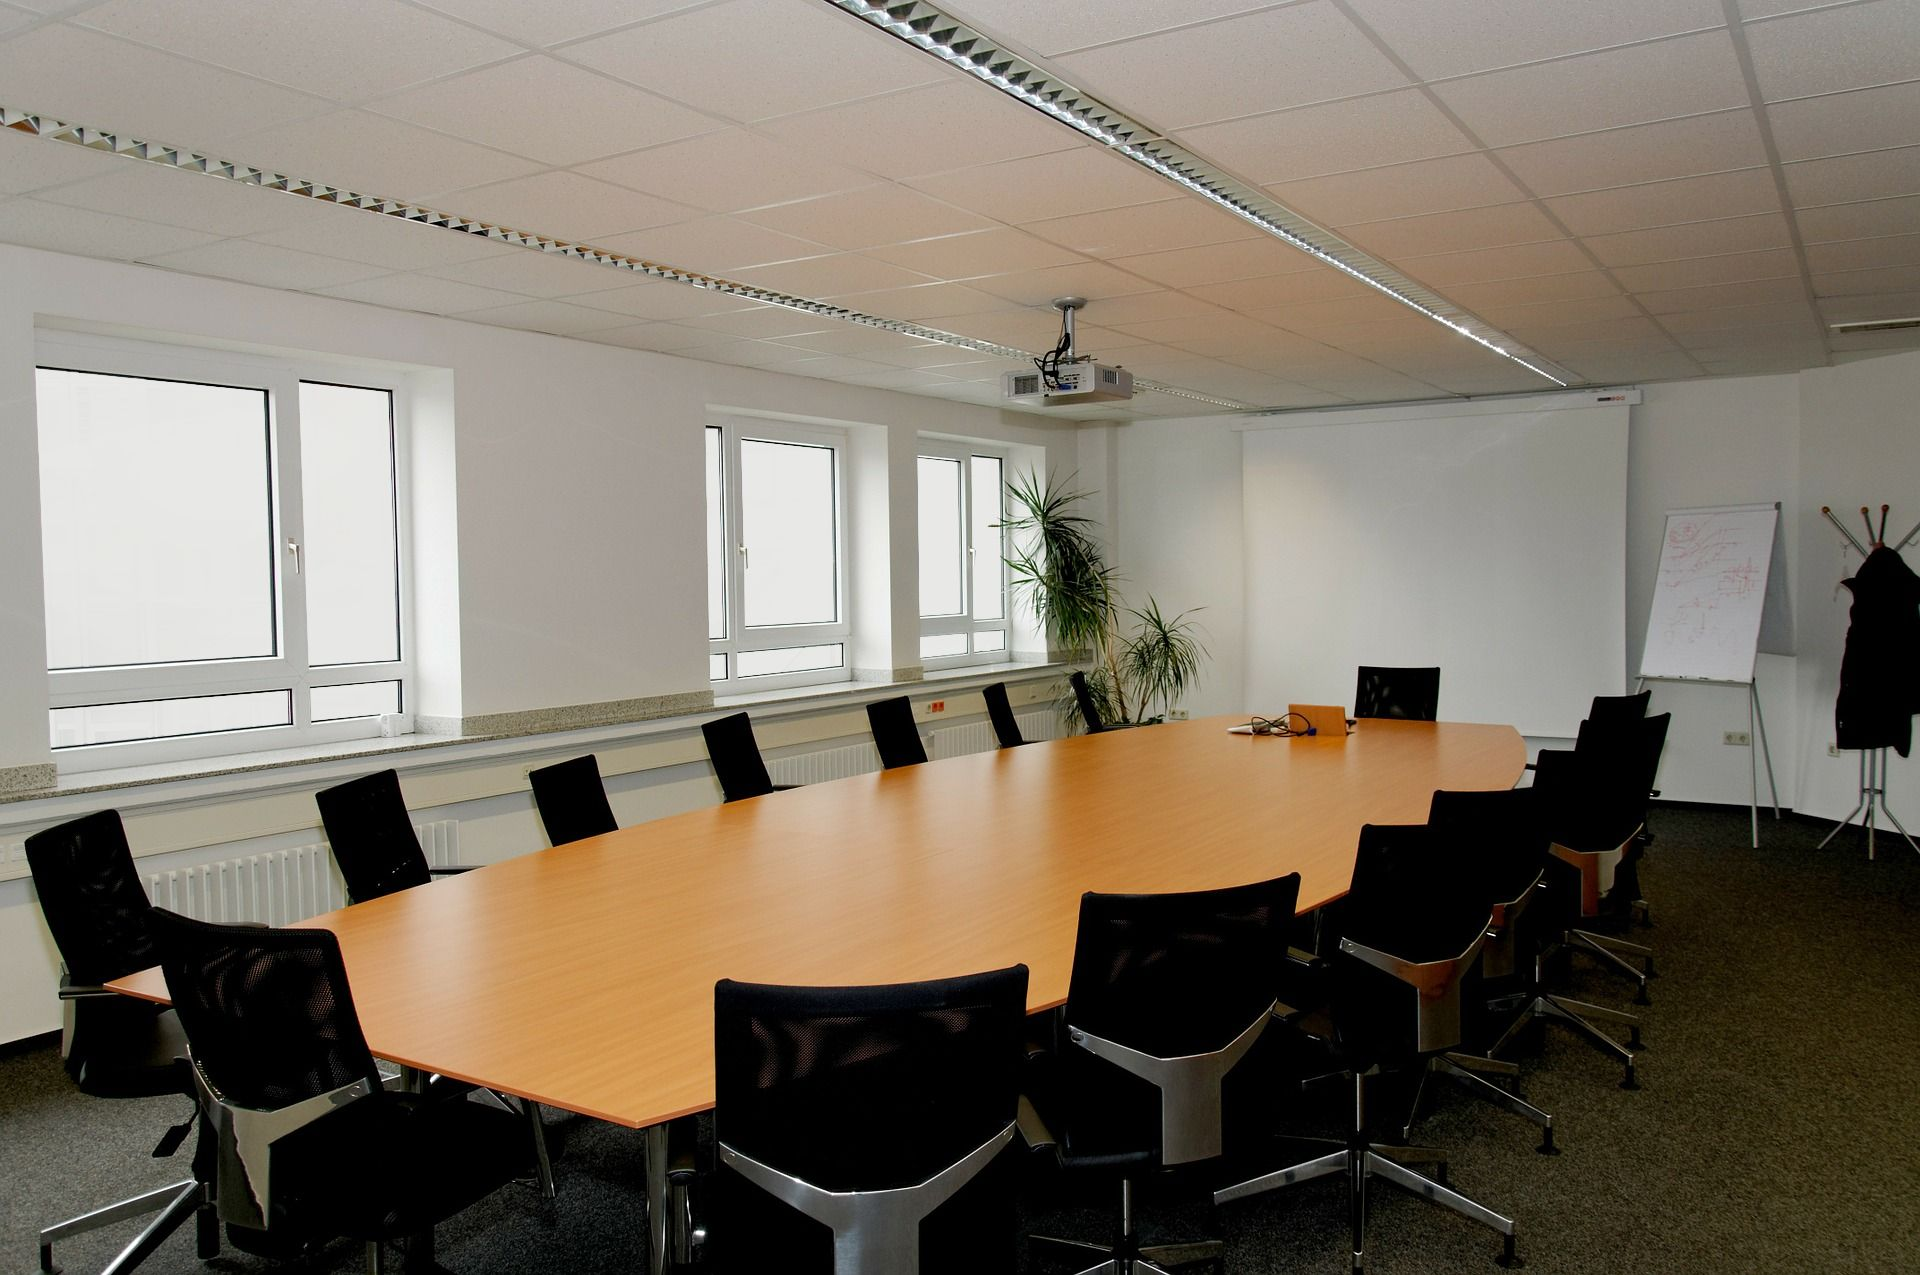 conference-room-338563_1920-opaque.jpg